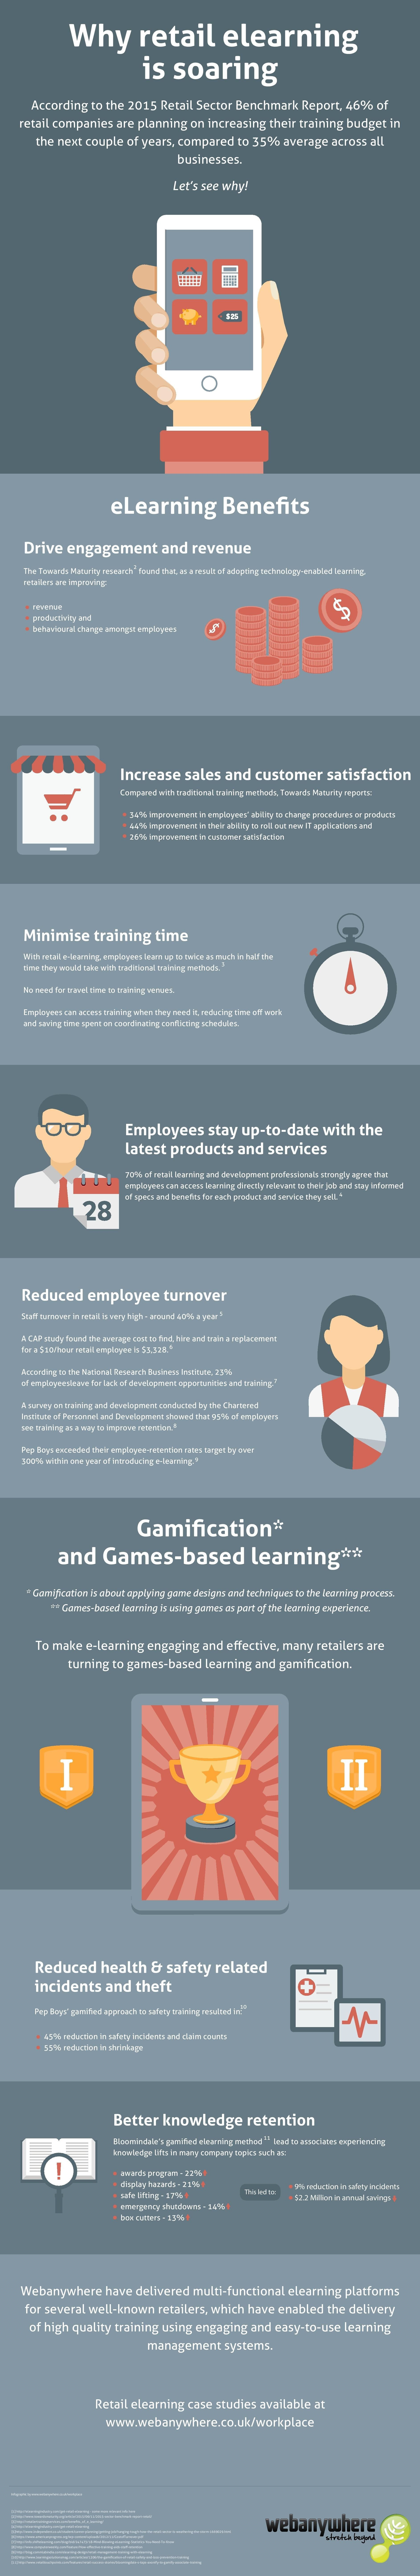 Why Retail eLearning Is Soaring Infographic